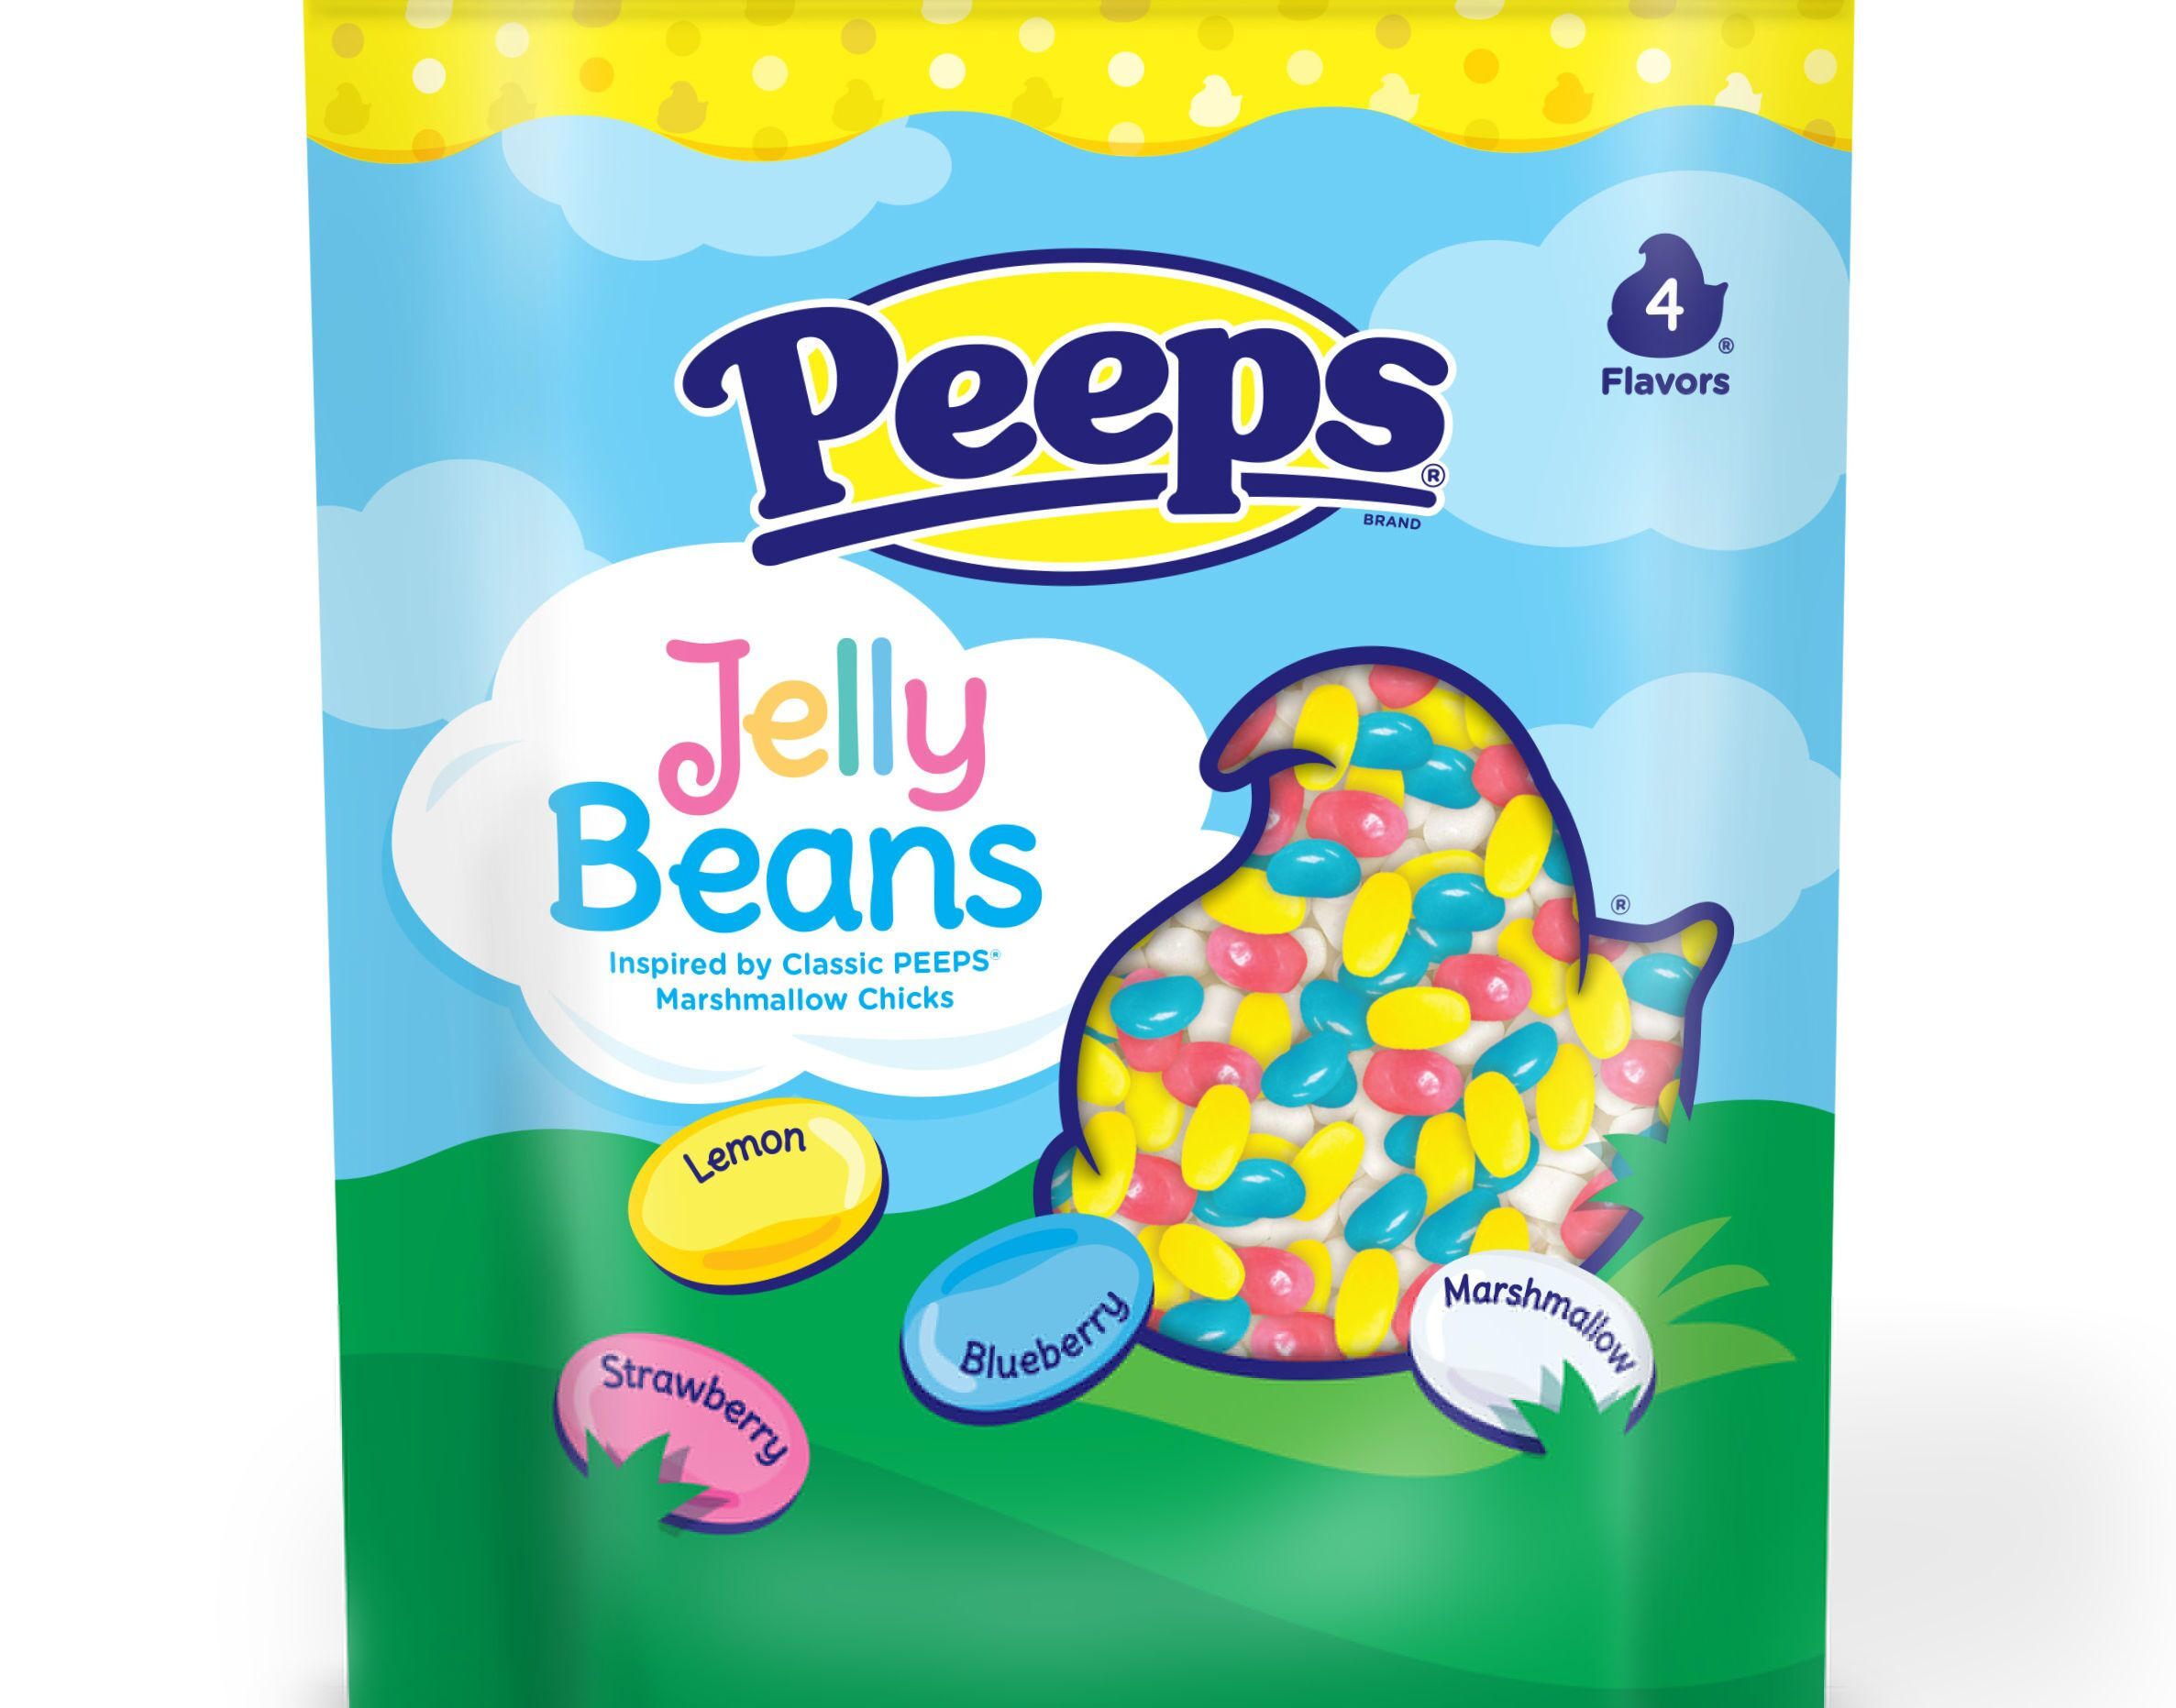 PEEPS Flavored Jelly Beans will become the Easter Bunny's favorite treat